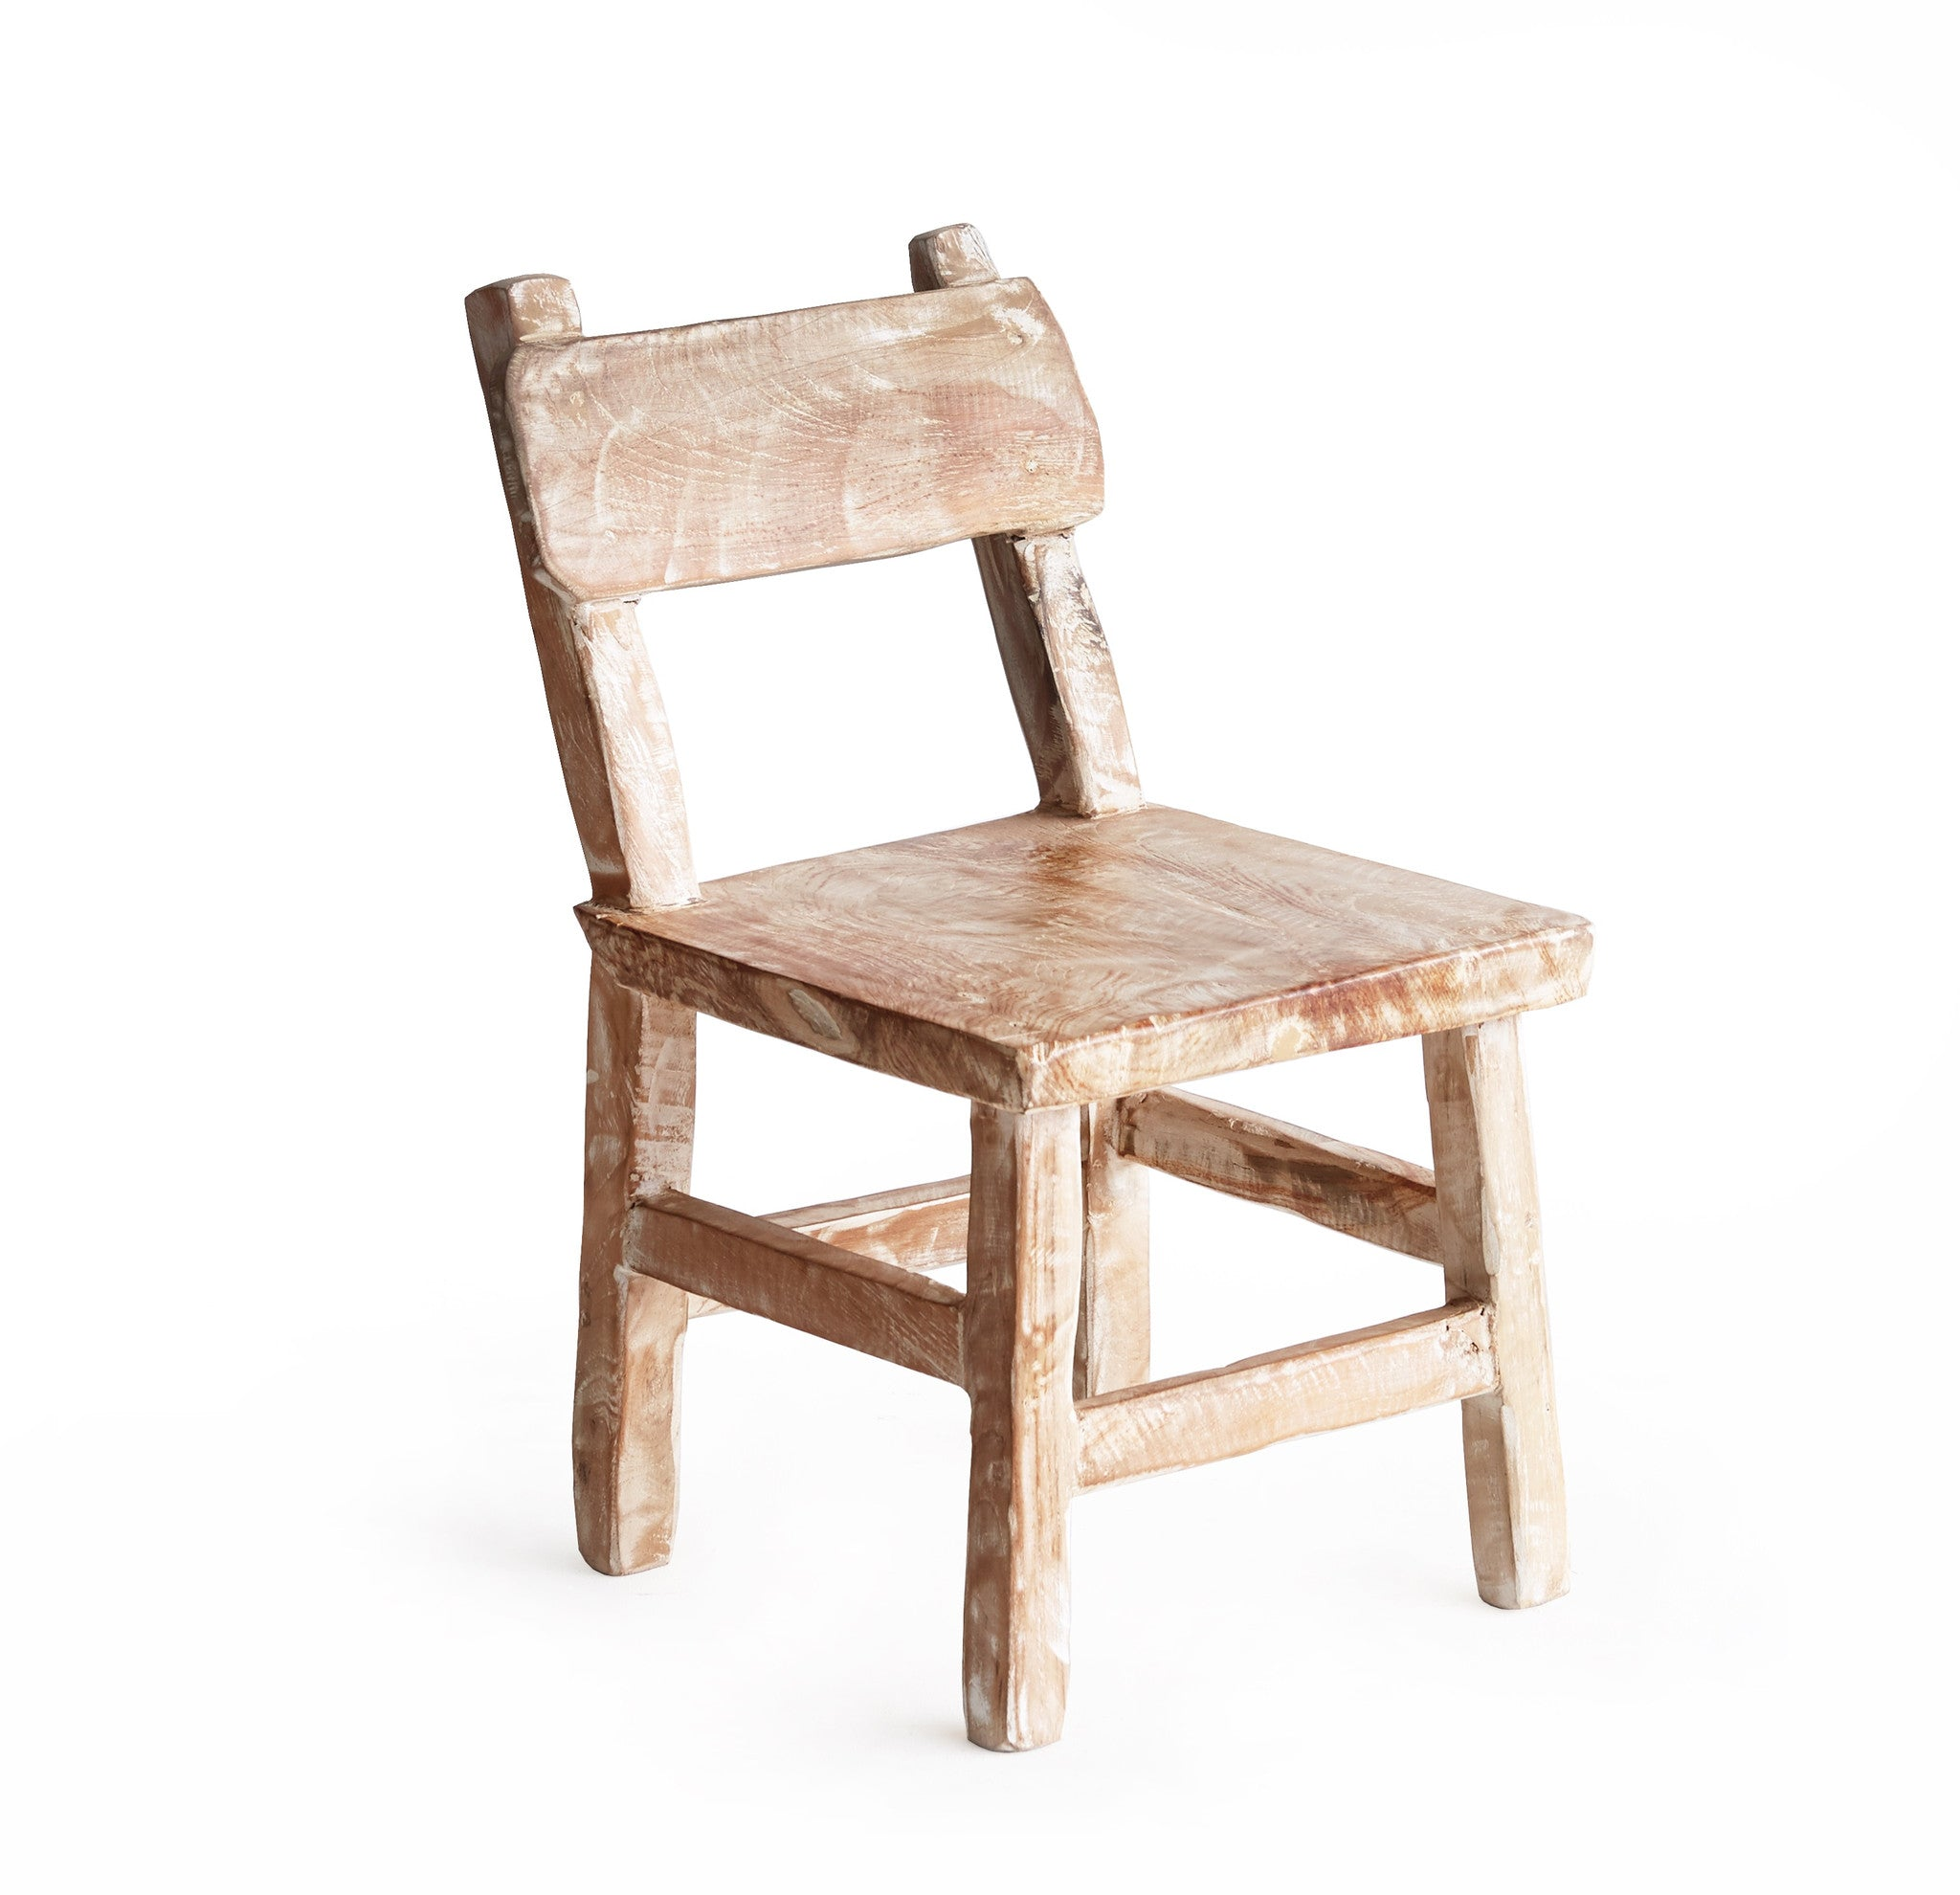 Teak Kid's Chair-Nomad Village-Originals Furniture - 3